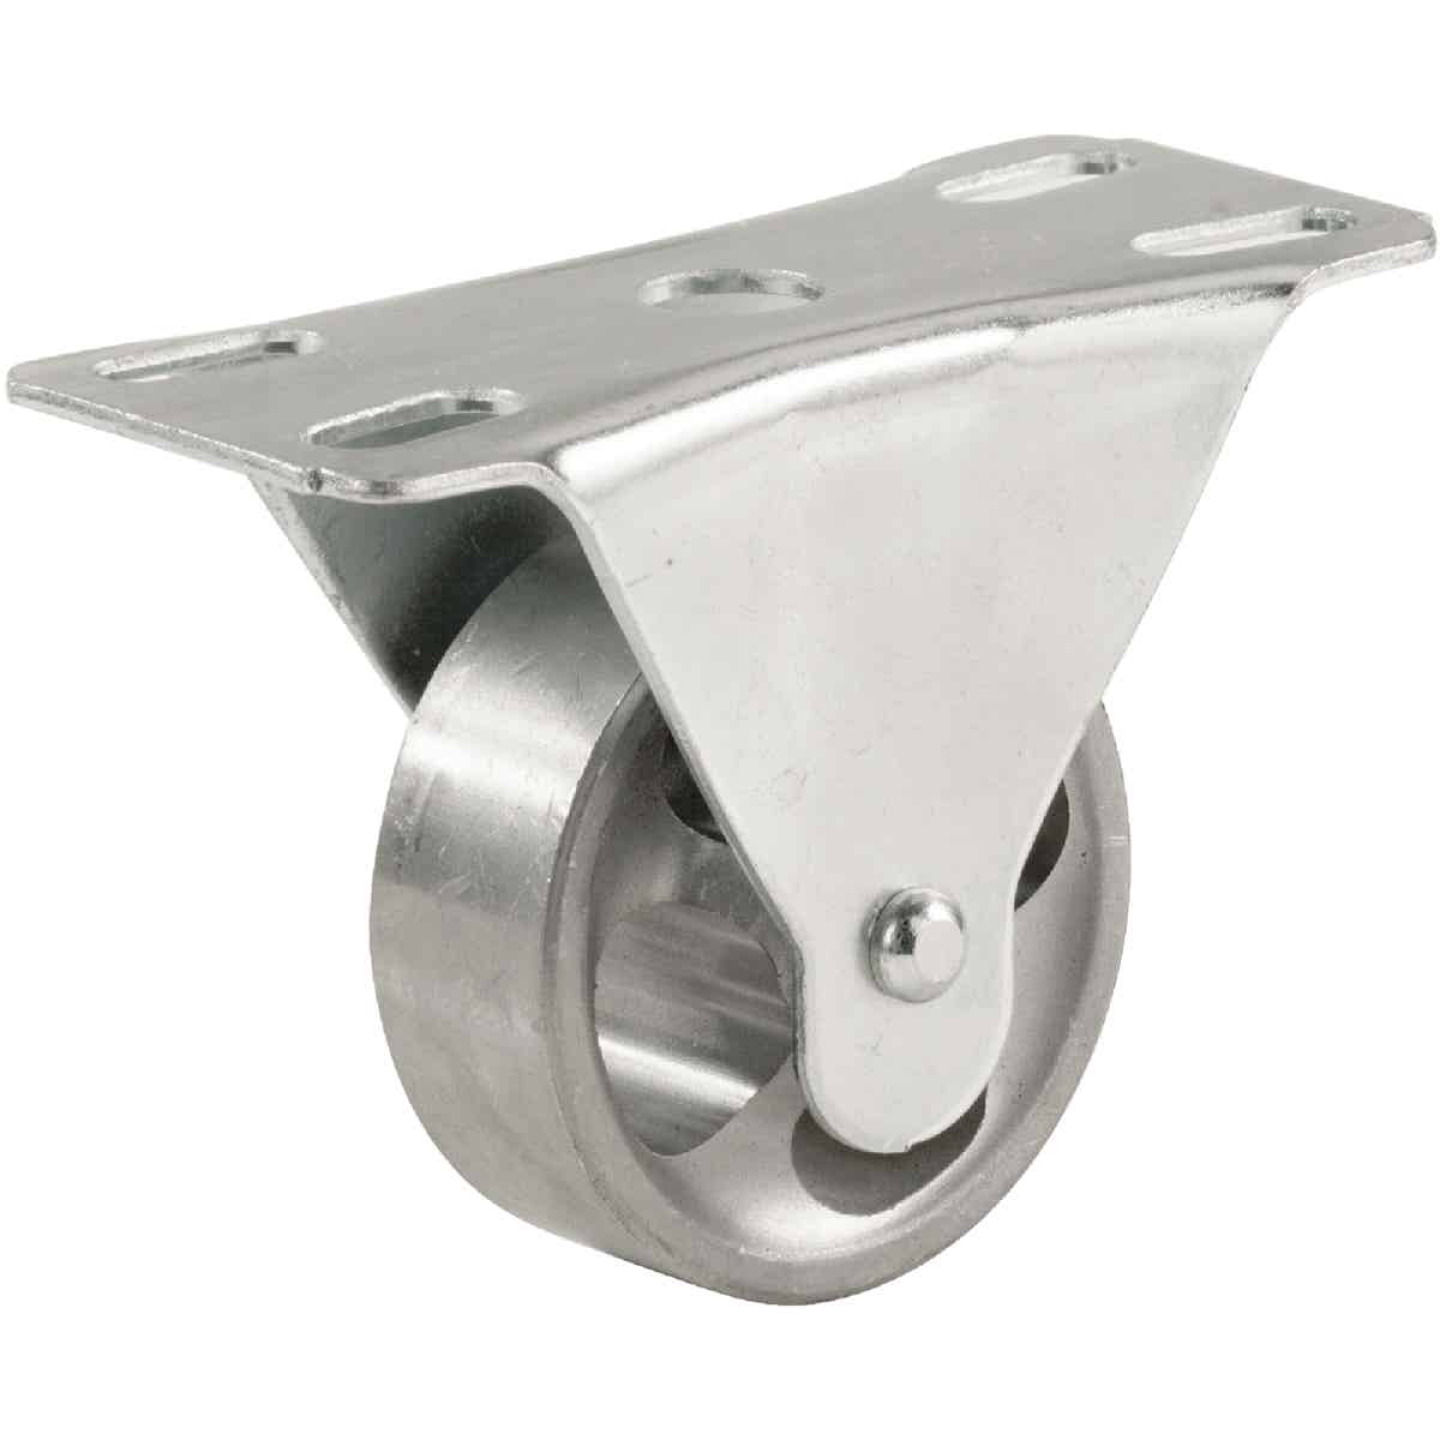 Shepherd 2 In. General-Duty Cast-Iron Rigid Plate Caster Image 1